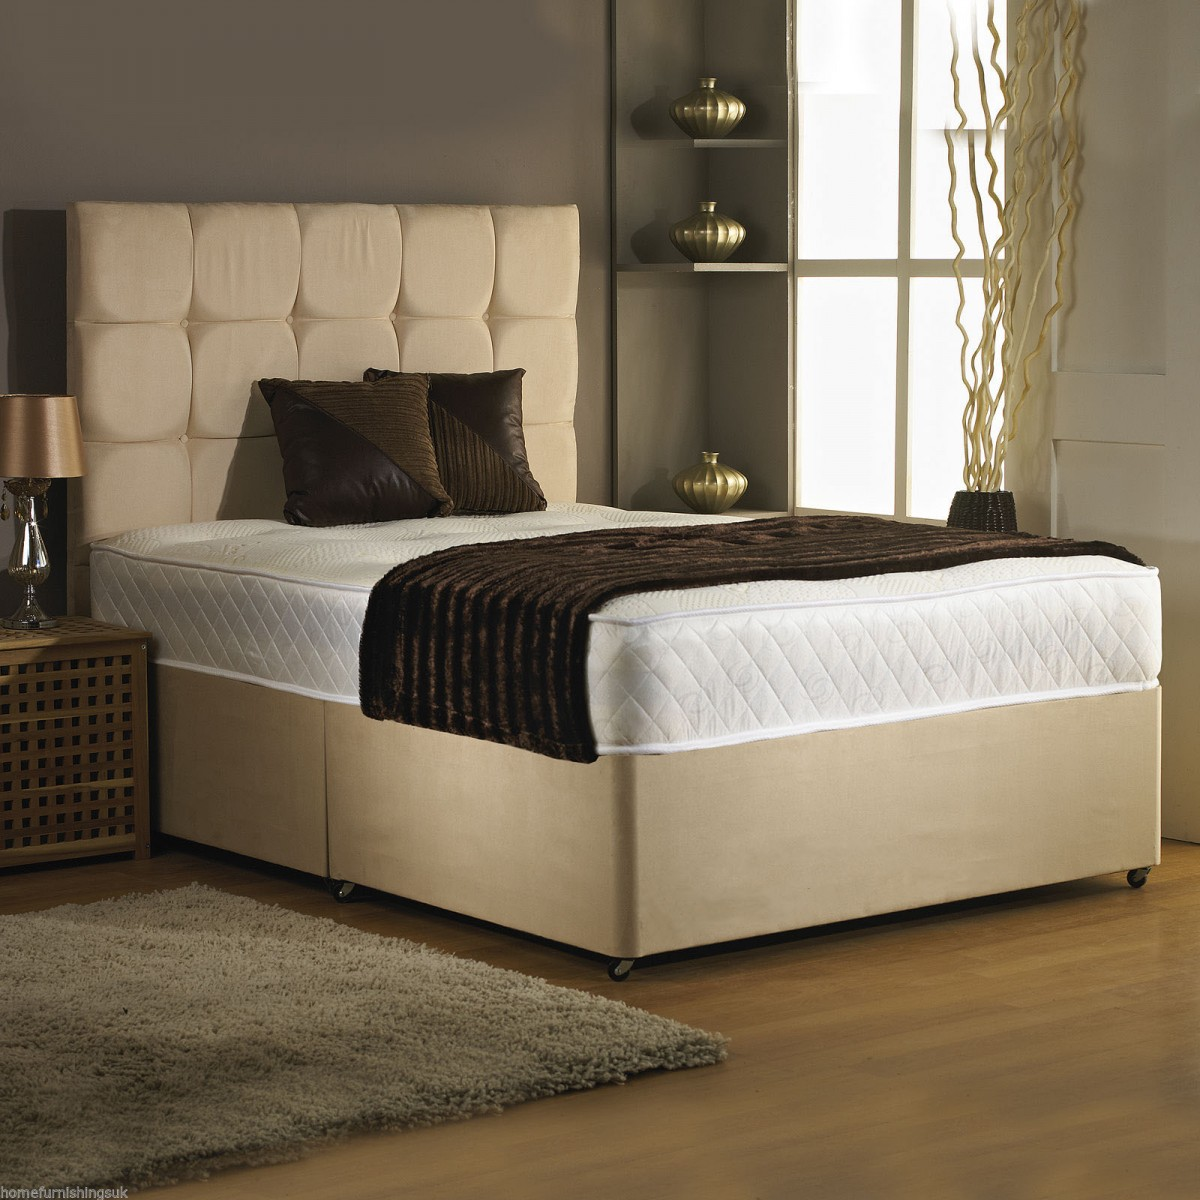 4ft small double divan bed base only in stone colour suede for 4ft double divan bed